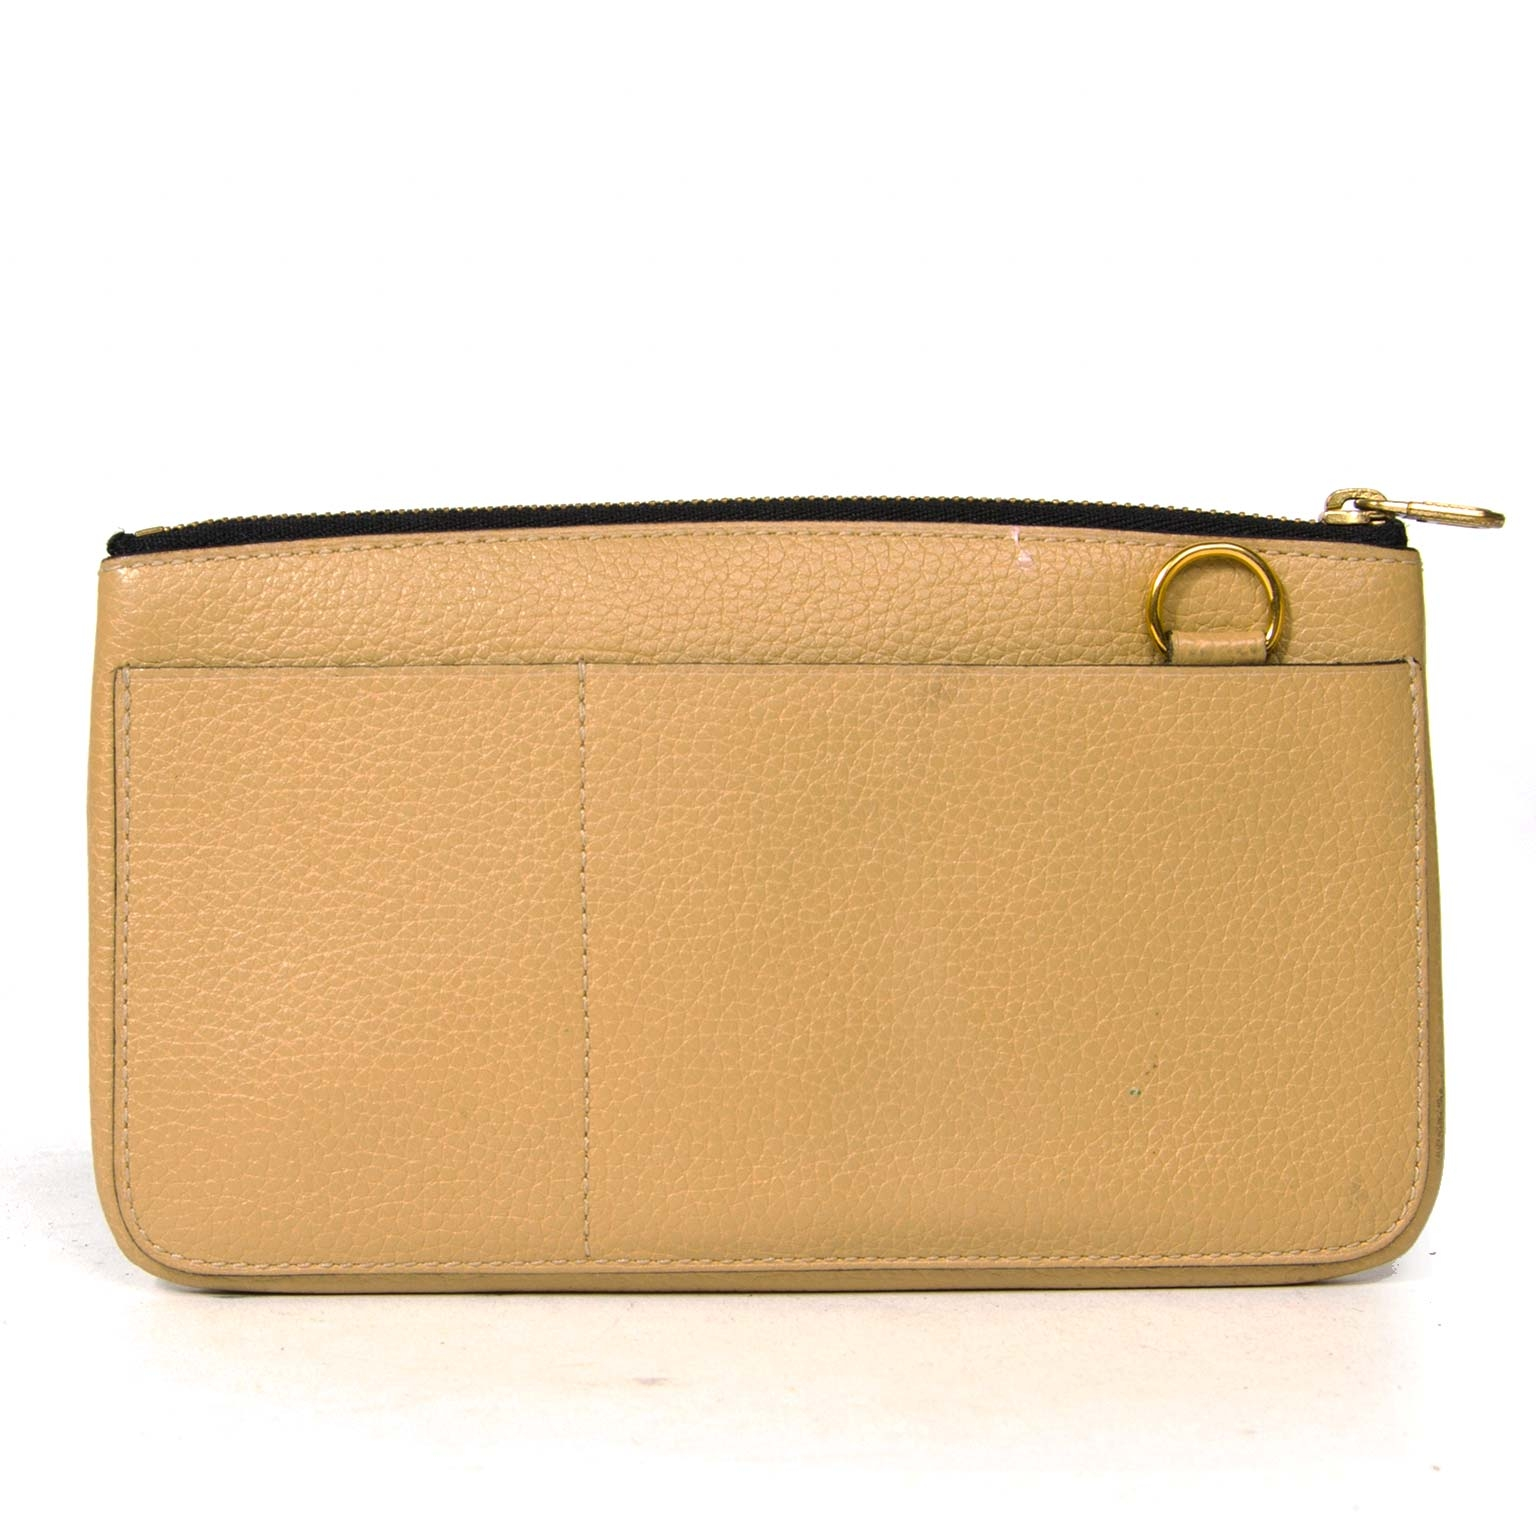 Delvaux beige leather pochette now for sale at labellov vintage fashion webshop belgium